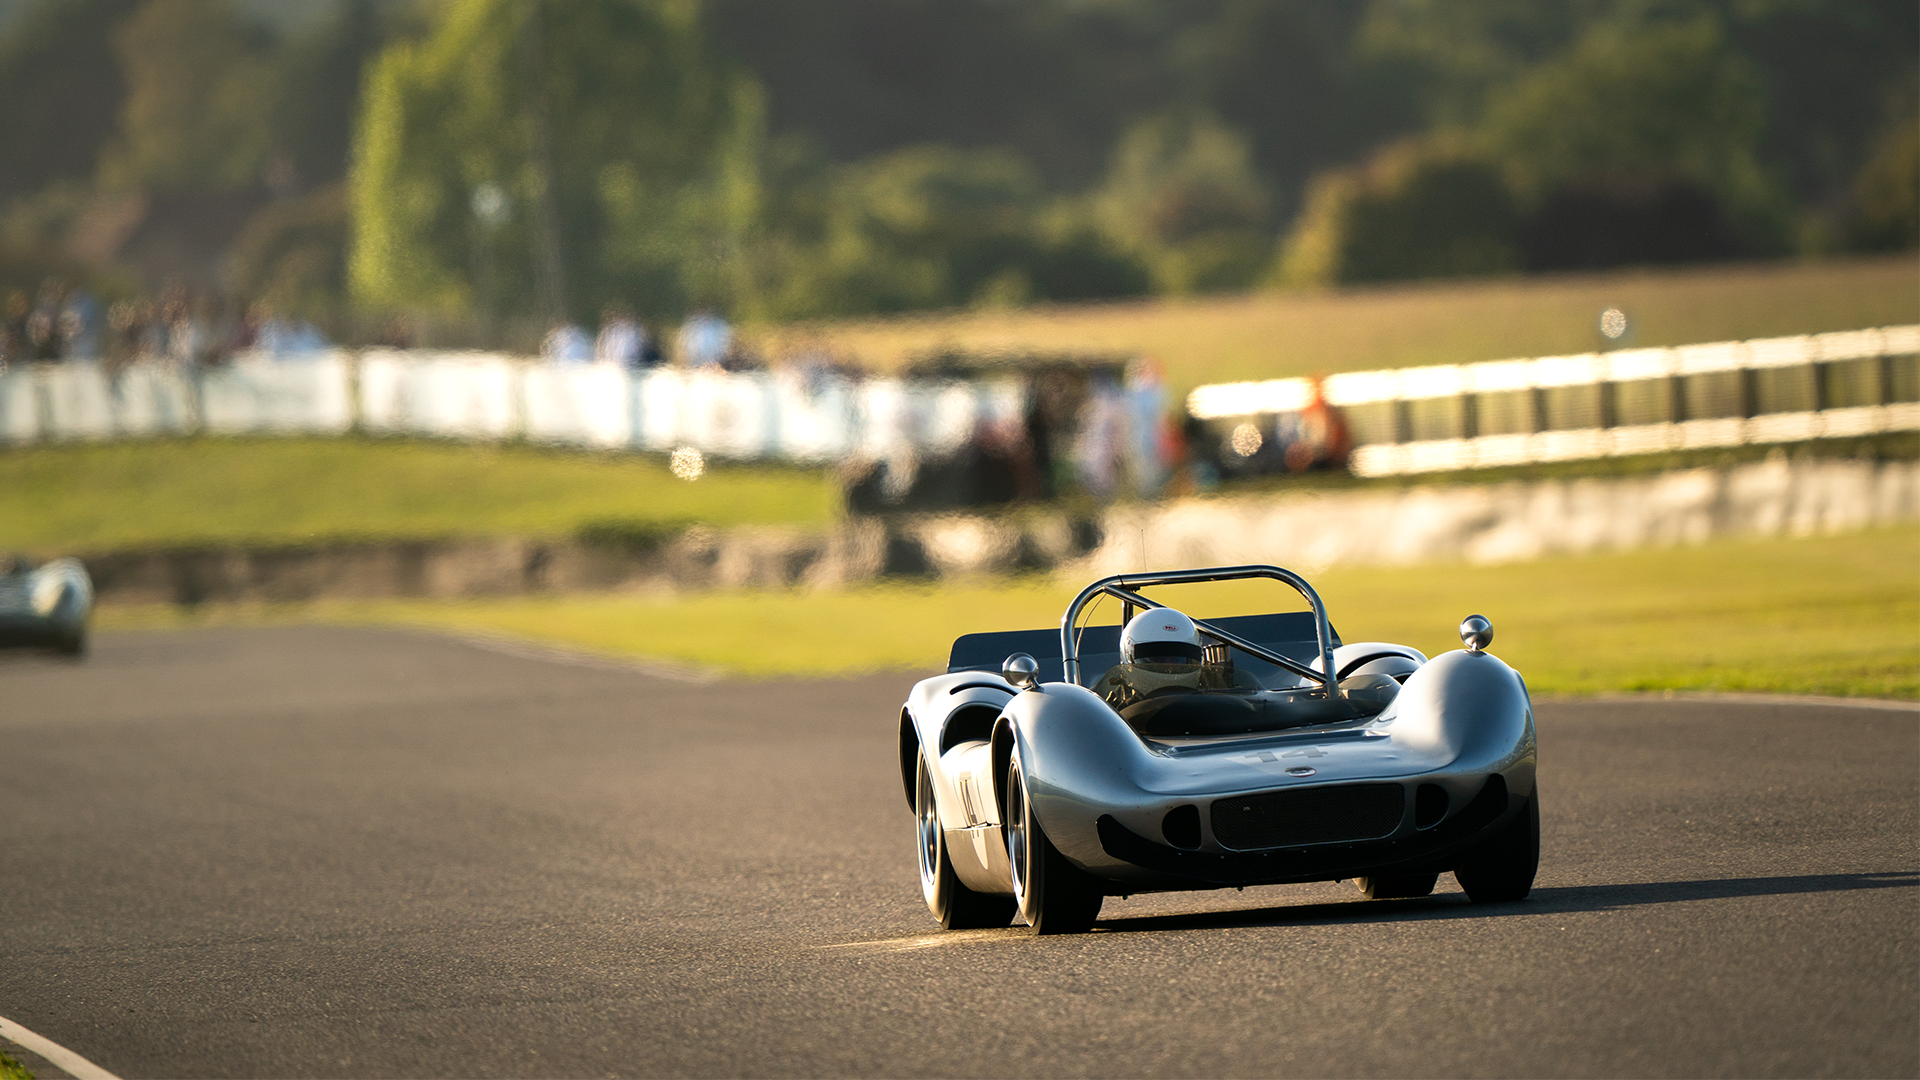 Goodwood Revival 2020